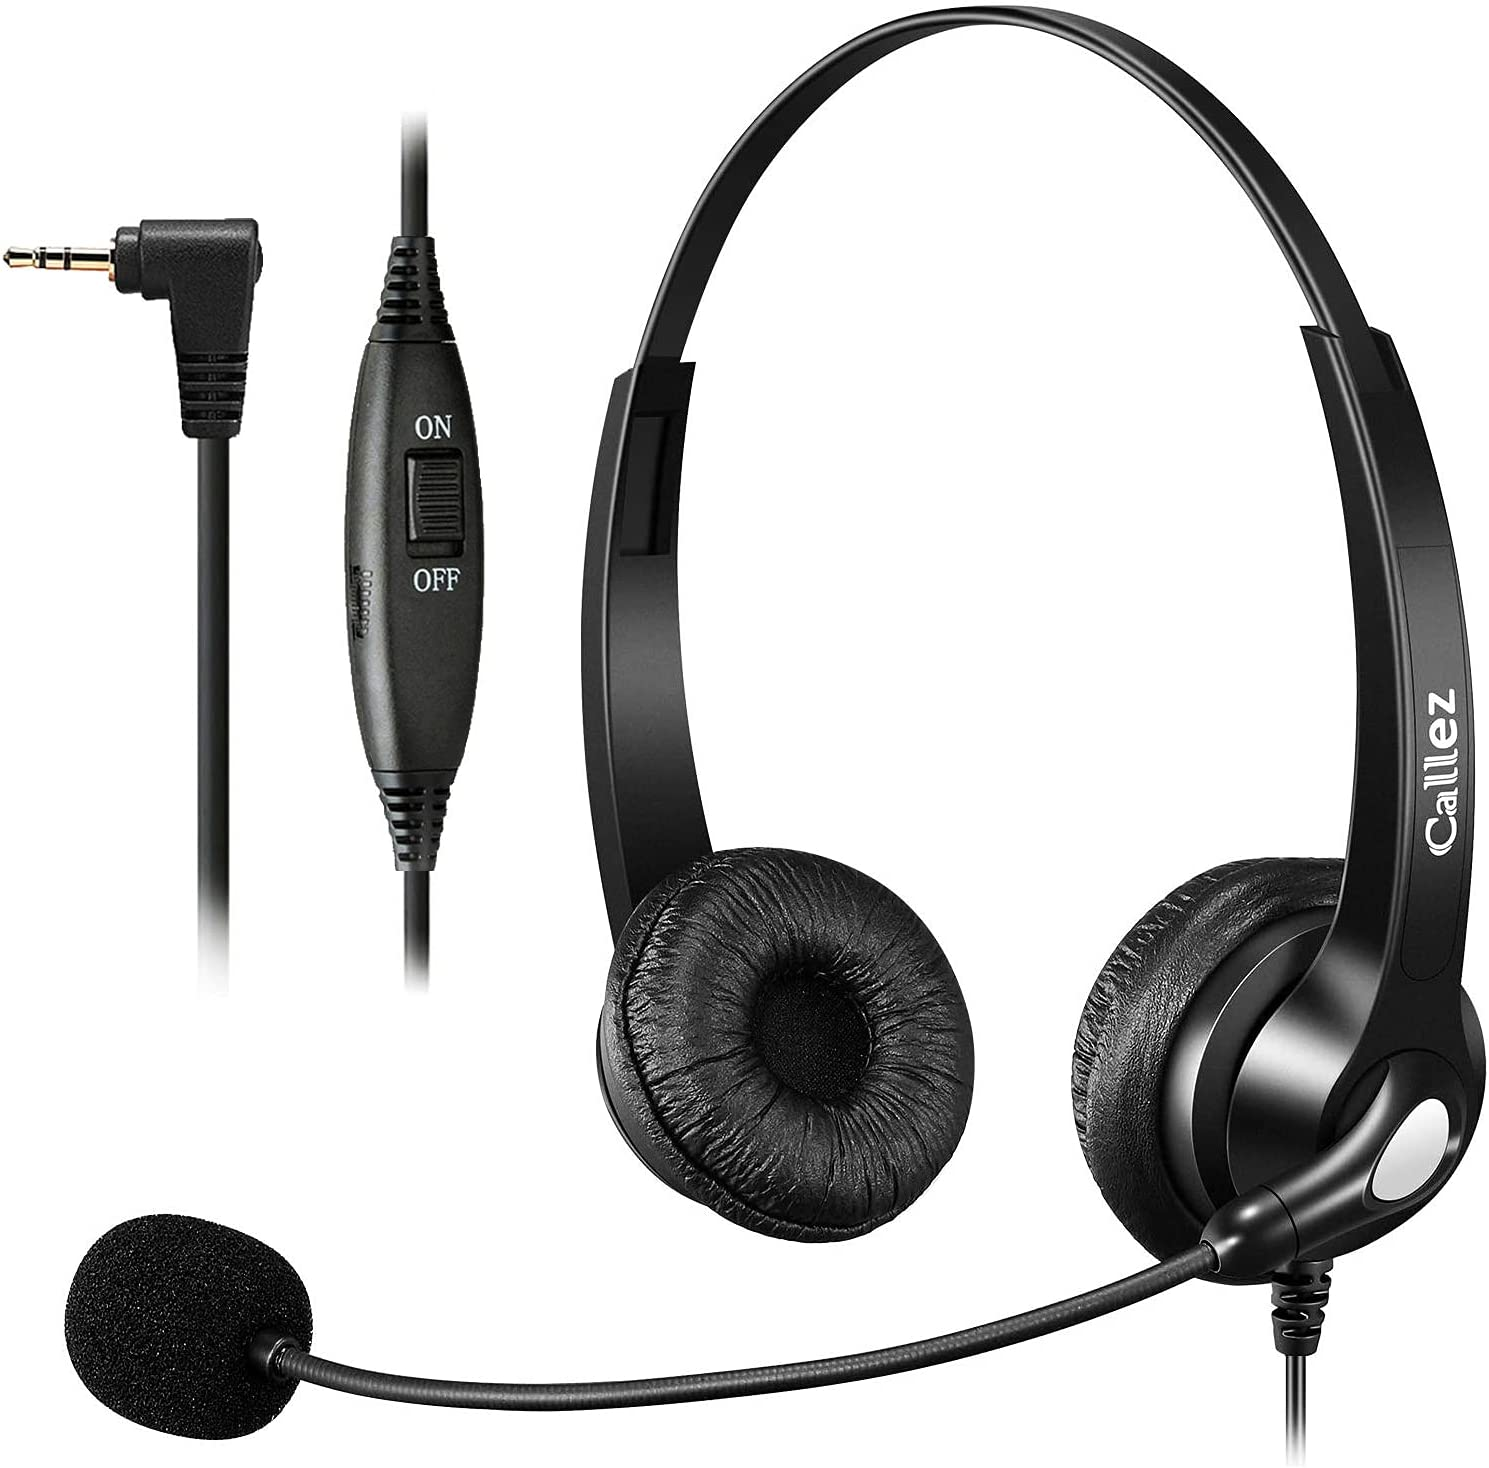 Callez Telephone Headset with Microphone Noise Cancelling, Phone Headset for Office Landline Phone with 2.5mm Headset Jack Compatible with Panasonic AT&T ML17929 Vtech RCA Uniden Cisco Cordless Phone